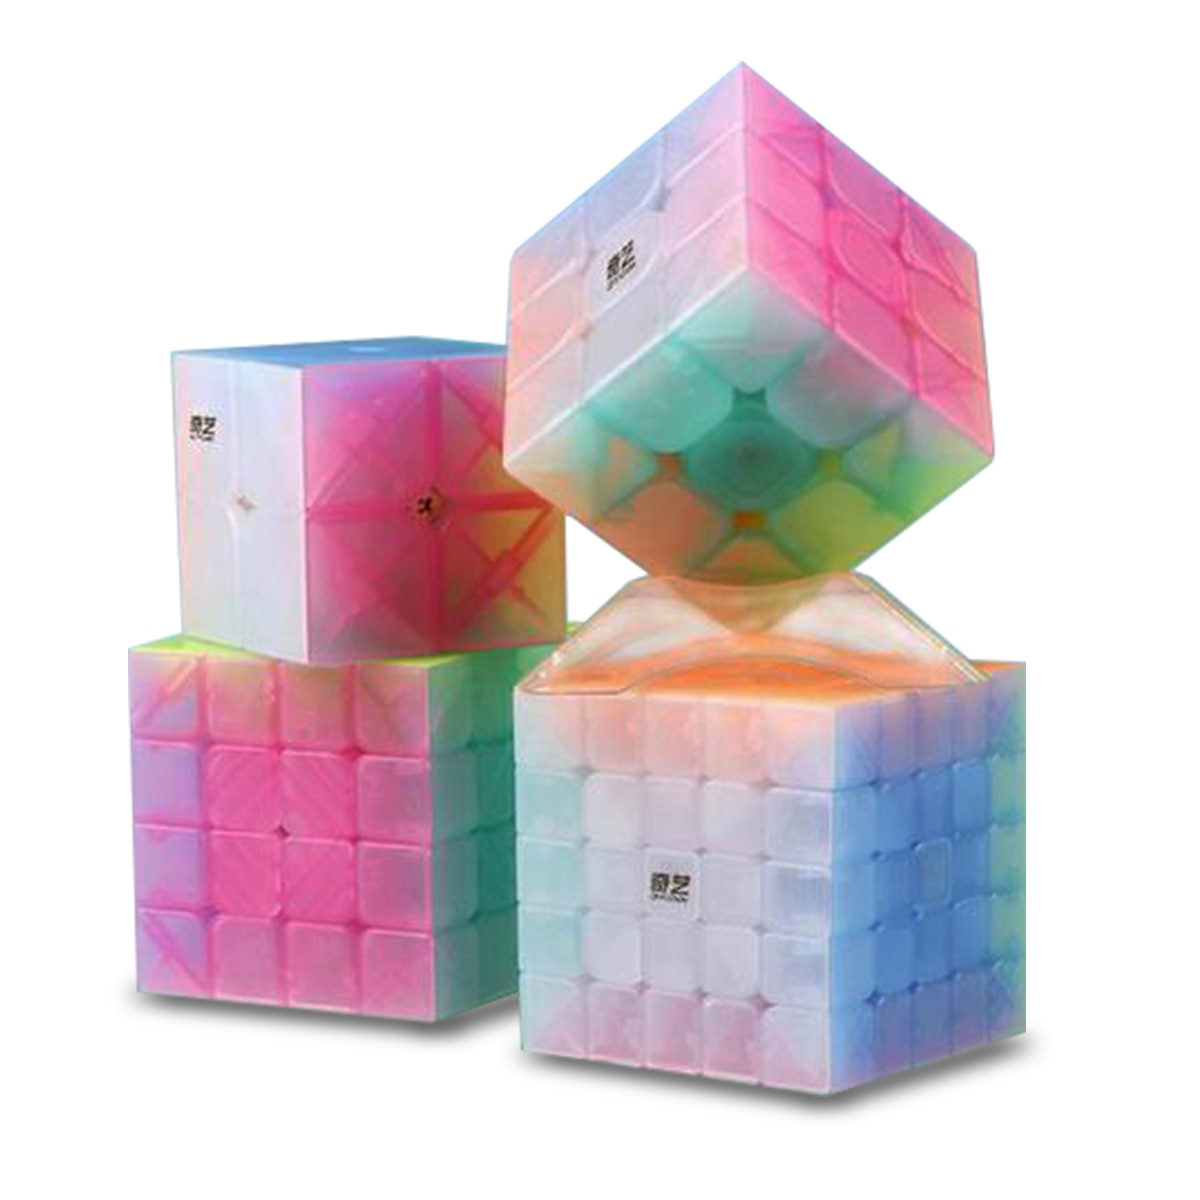 QiYi 2x2 3x3 4x4 5x5 Jelly Cube Design Speed Cube Puzzle Magic Cube Base Cubo Magico Educational Toys For Children 4x4x4 qiyi magic cube professional speed puzzle cube educational toys for kids children xmas gifts cubo magico rubic